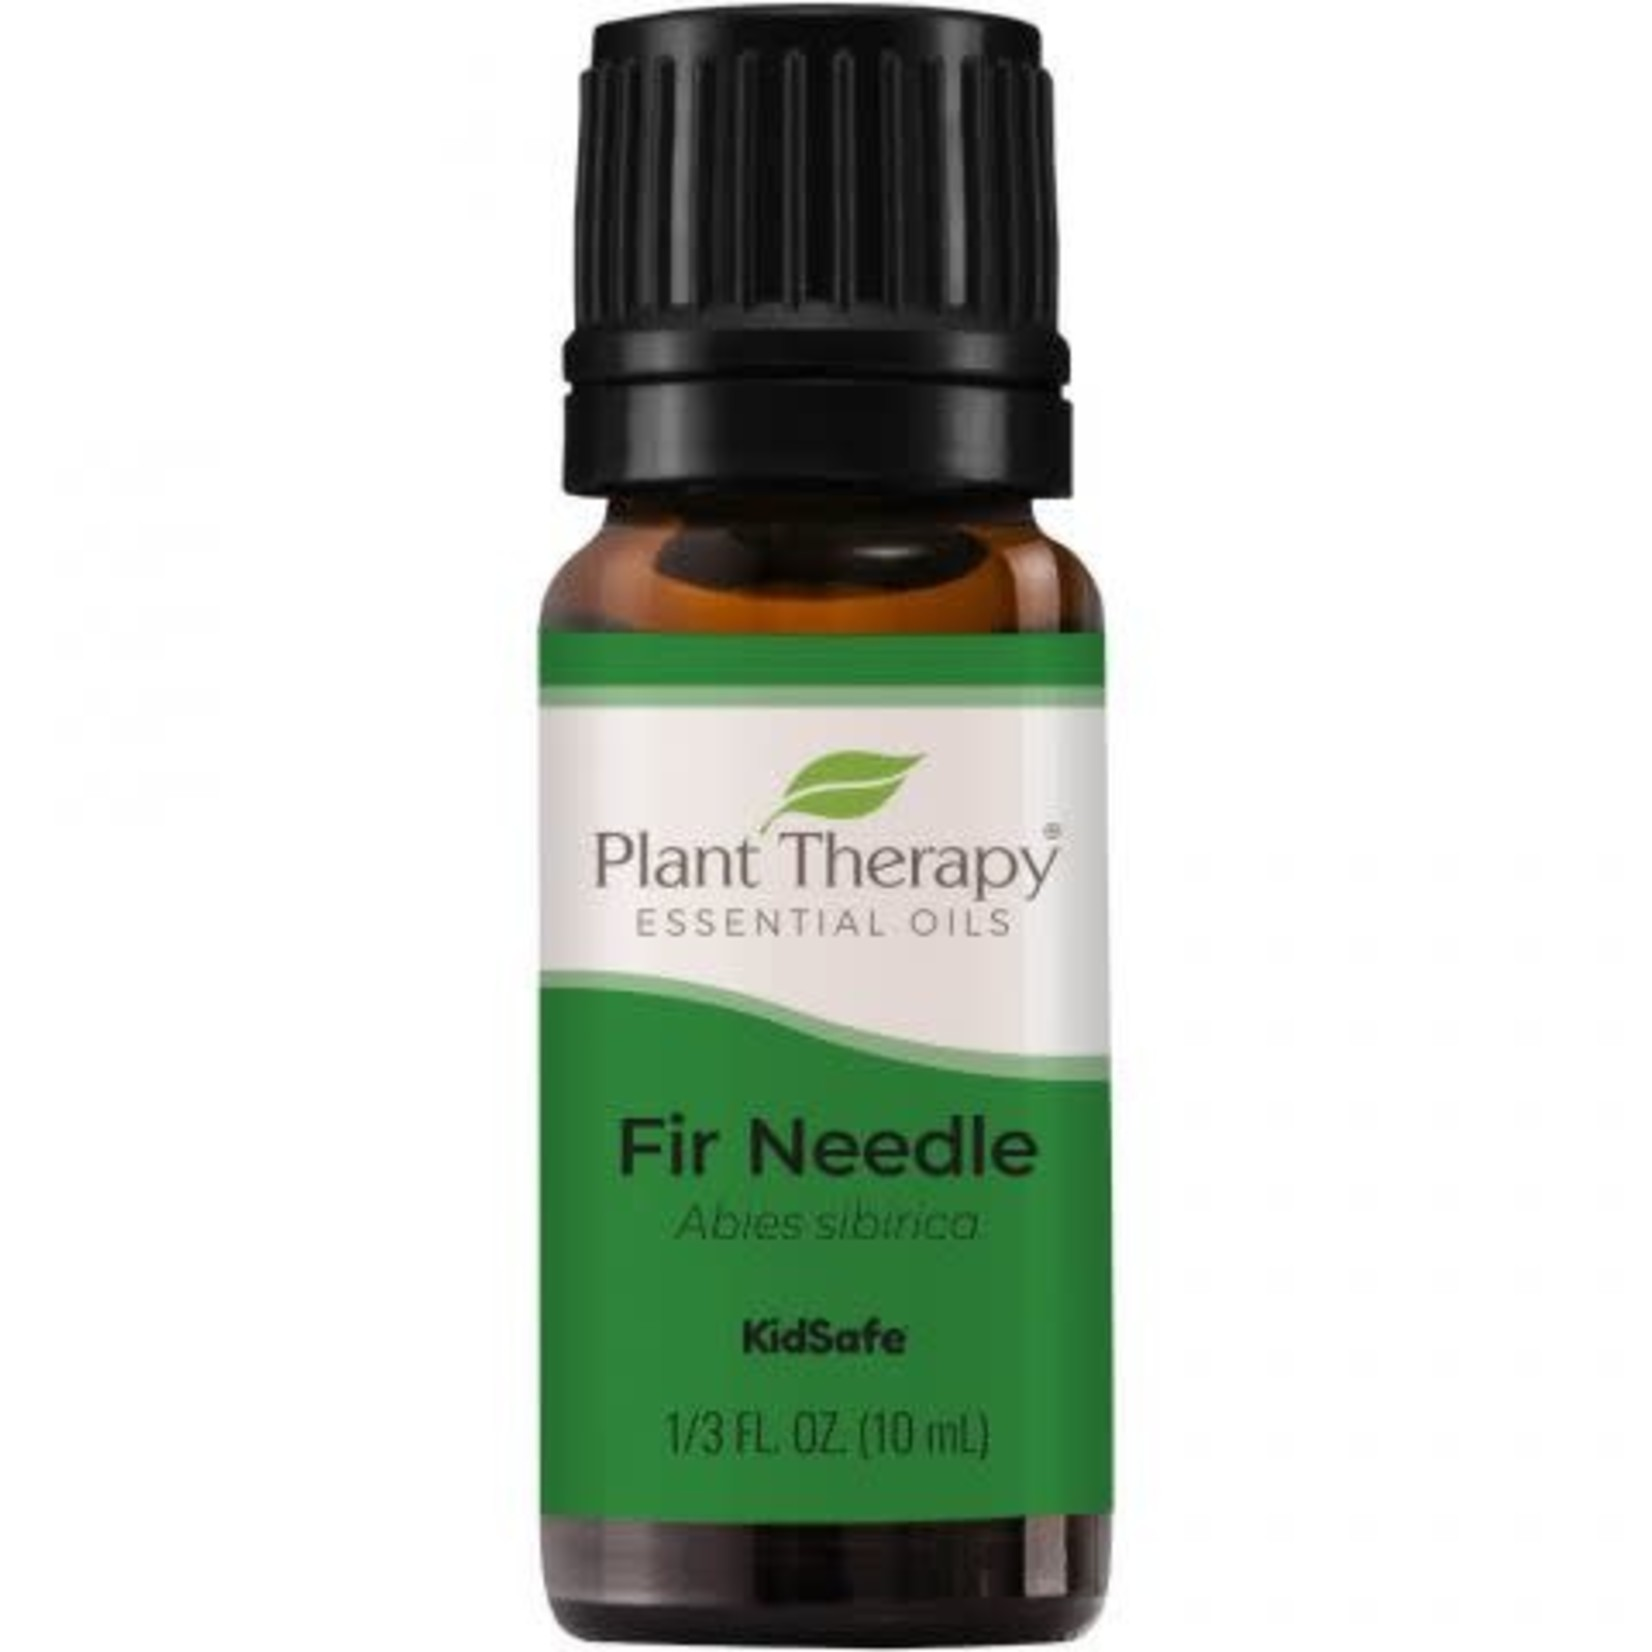 Plant Therapy PT Fir Needle Essential Oil 10ml